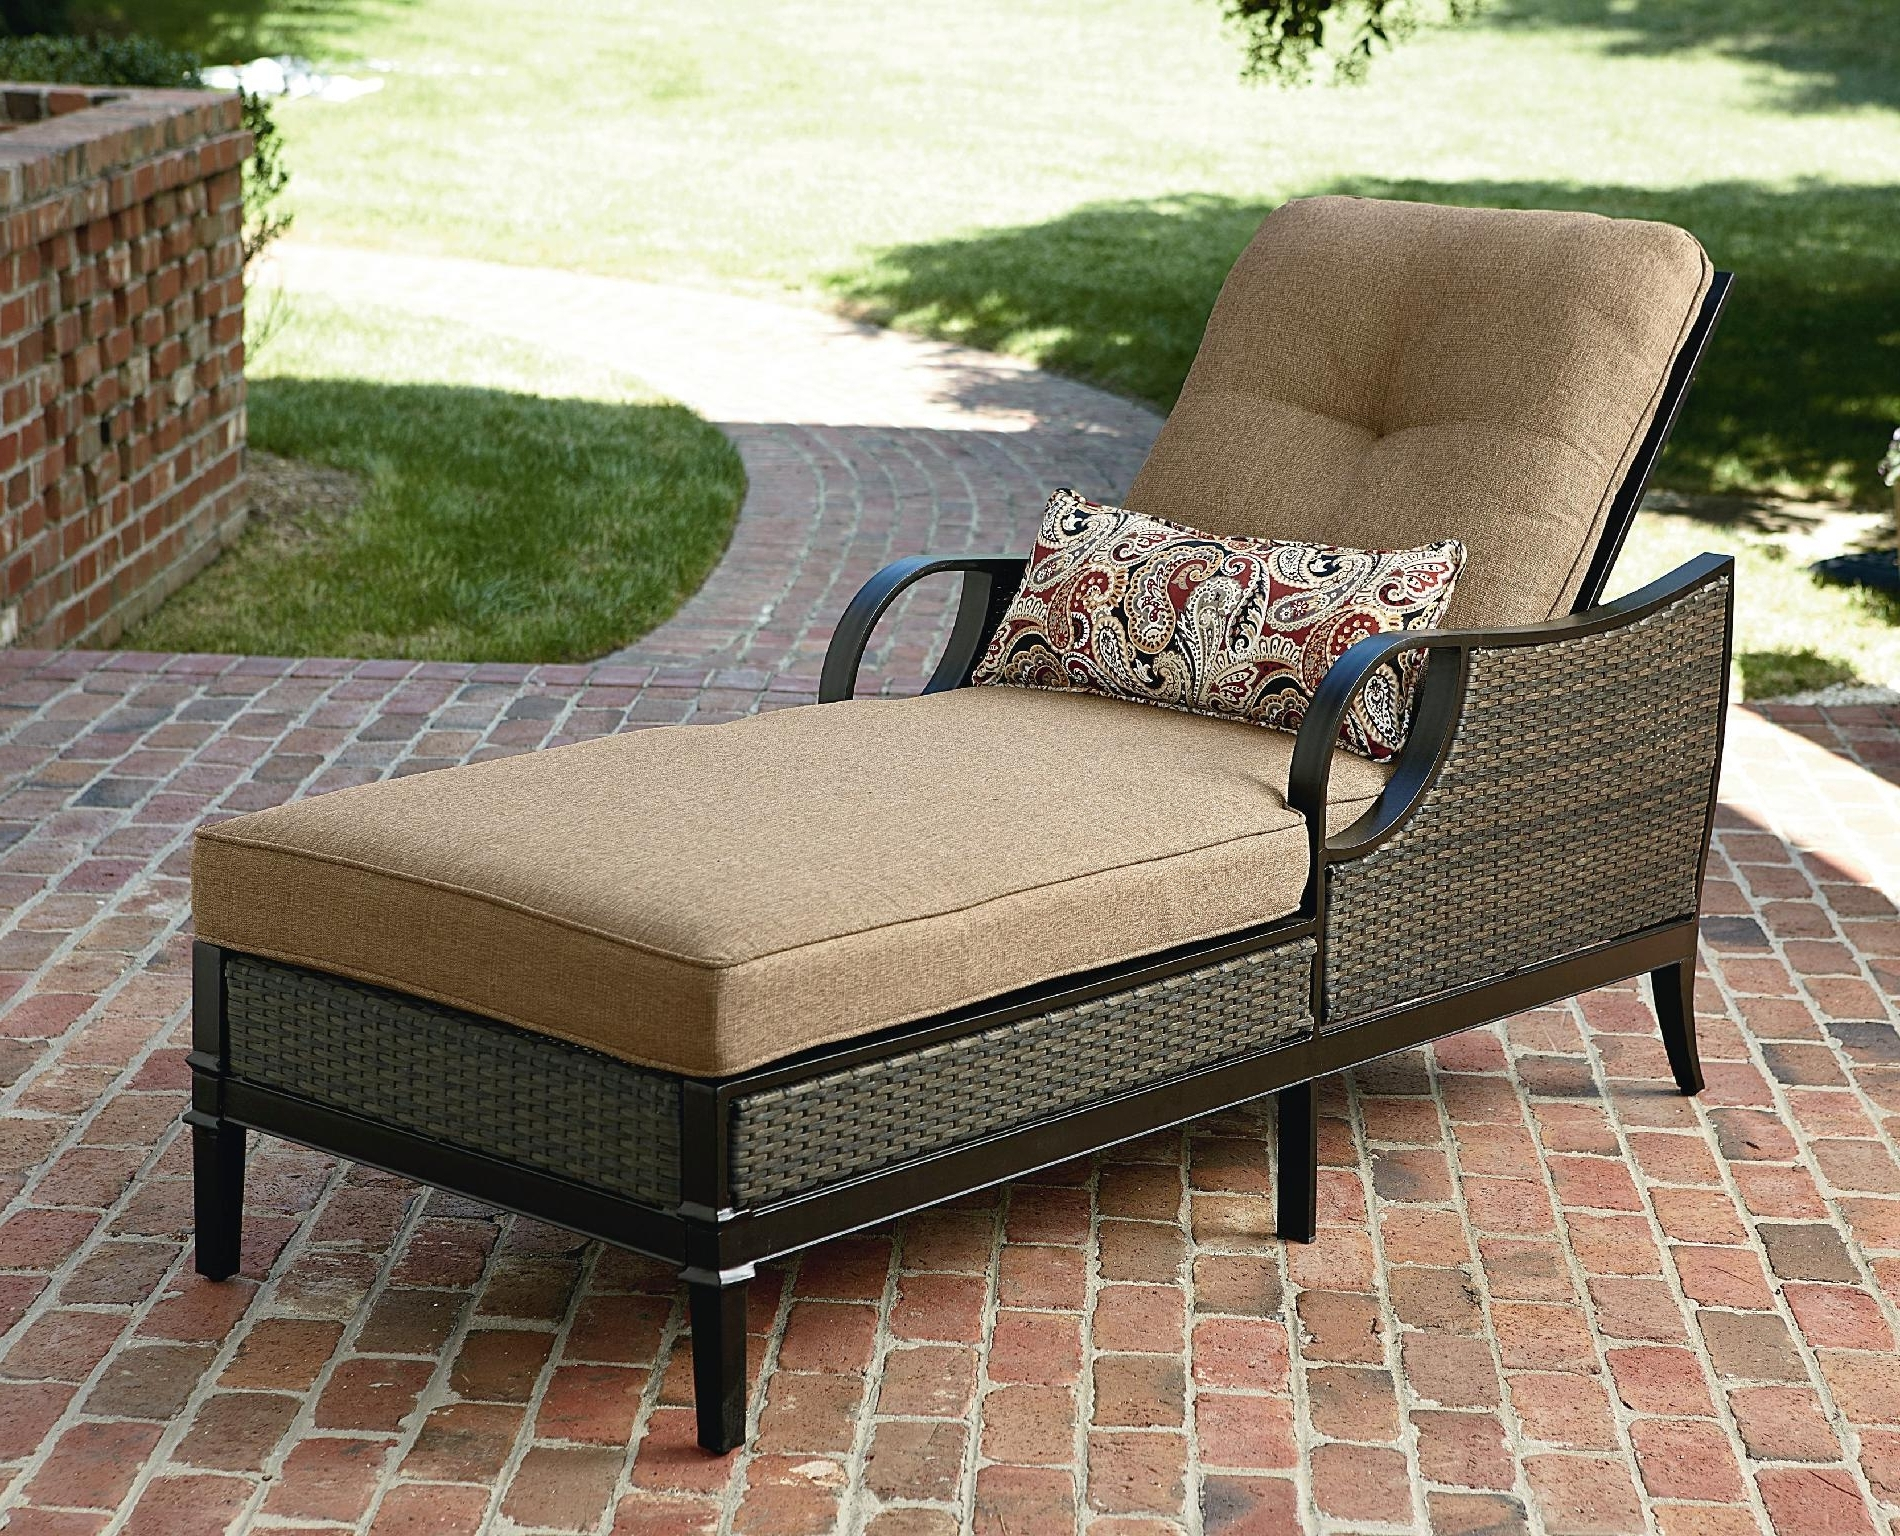 Cheap Outdoor Chaise Lounges Inside Best And Newest Chaise Lounge Chairs For Patio • Lounge Chairs Ideas (View 6 of 15)